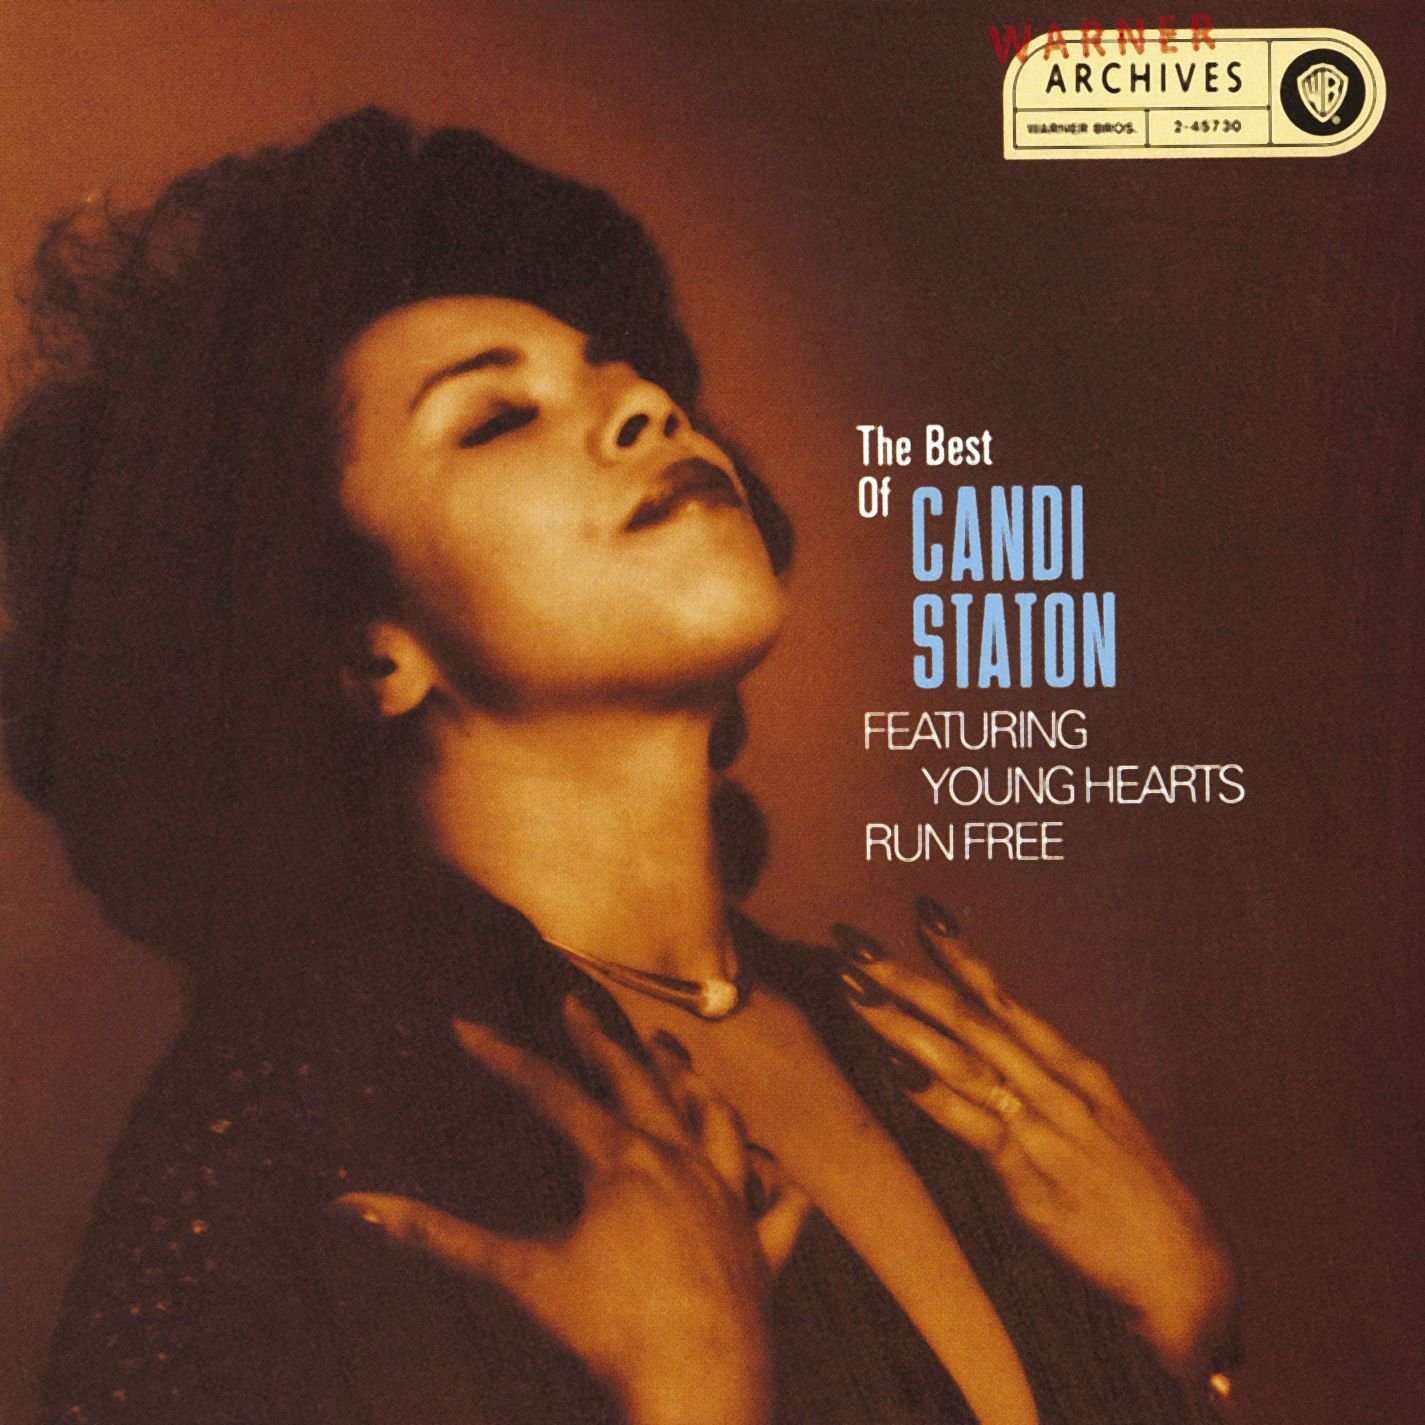 The Best of Candi Staton Featuring Young Hearts Run Free